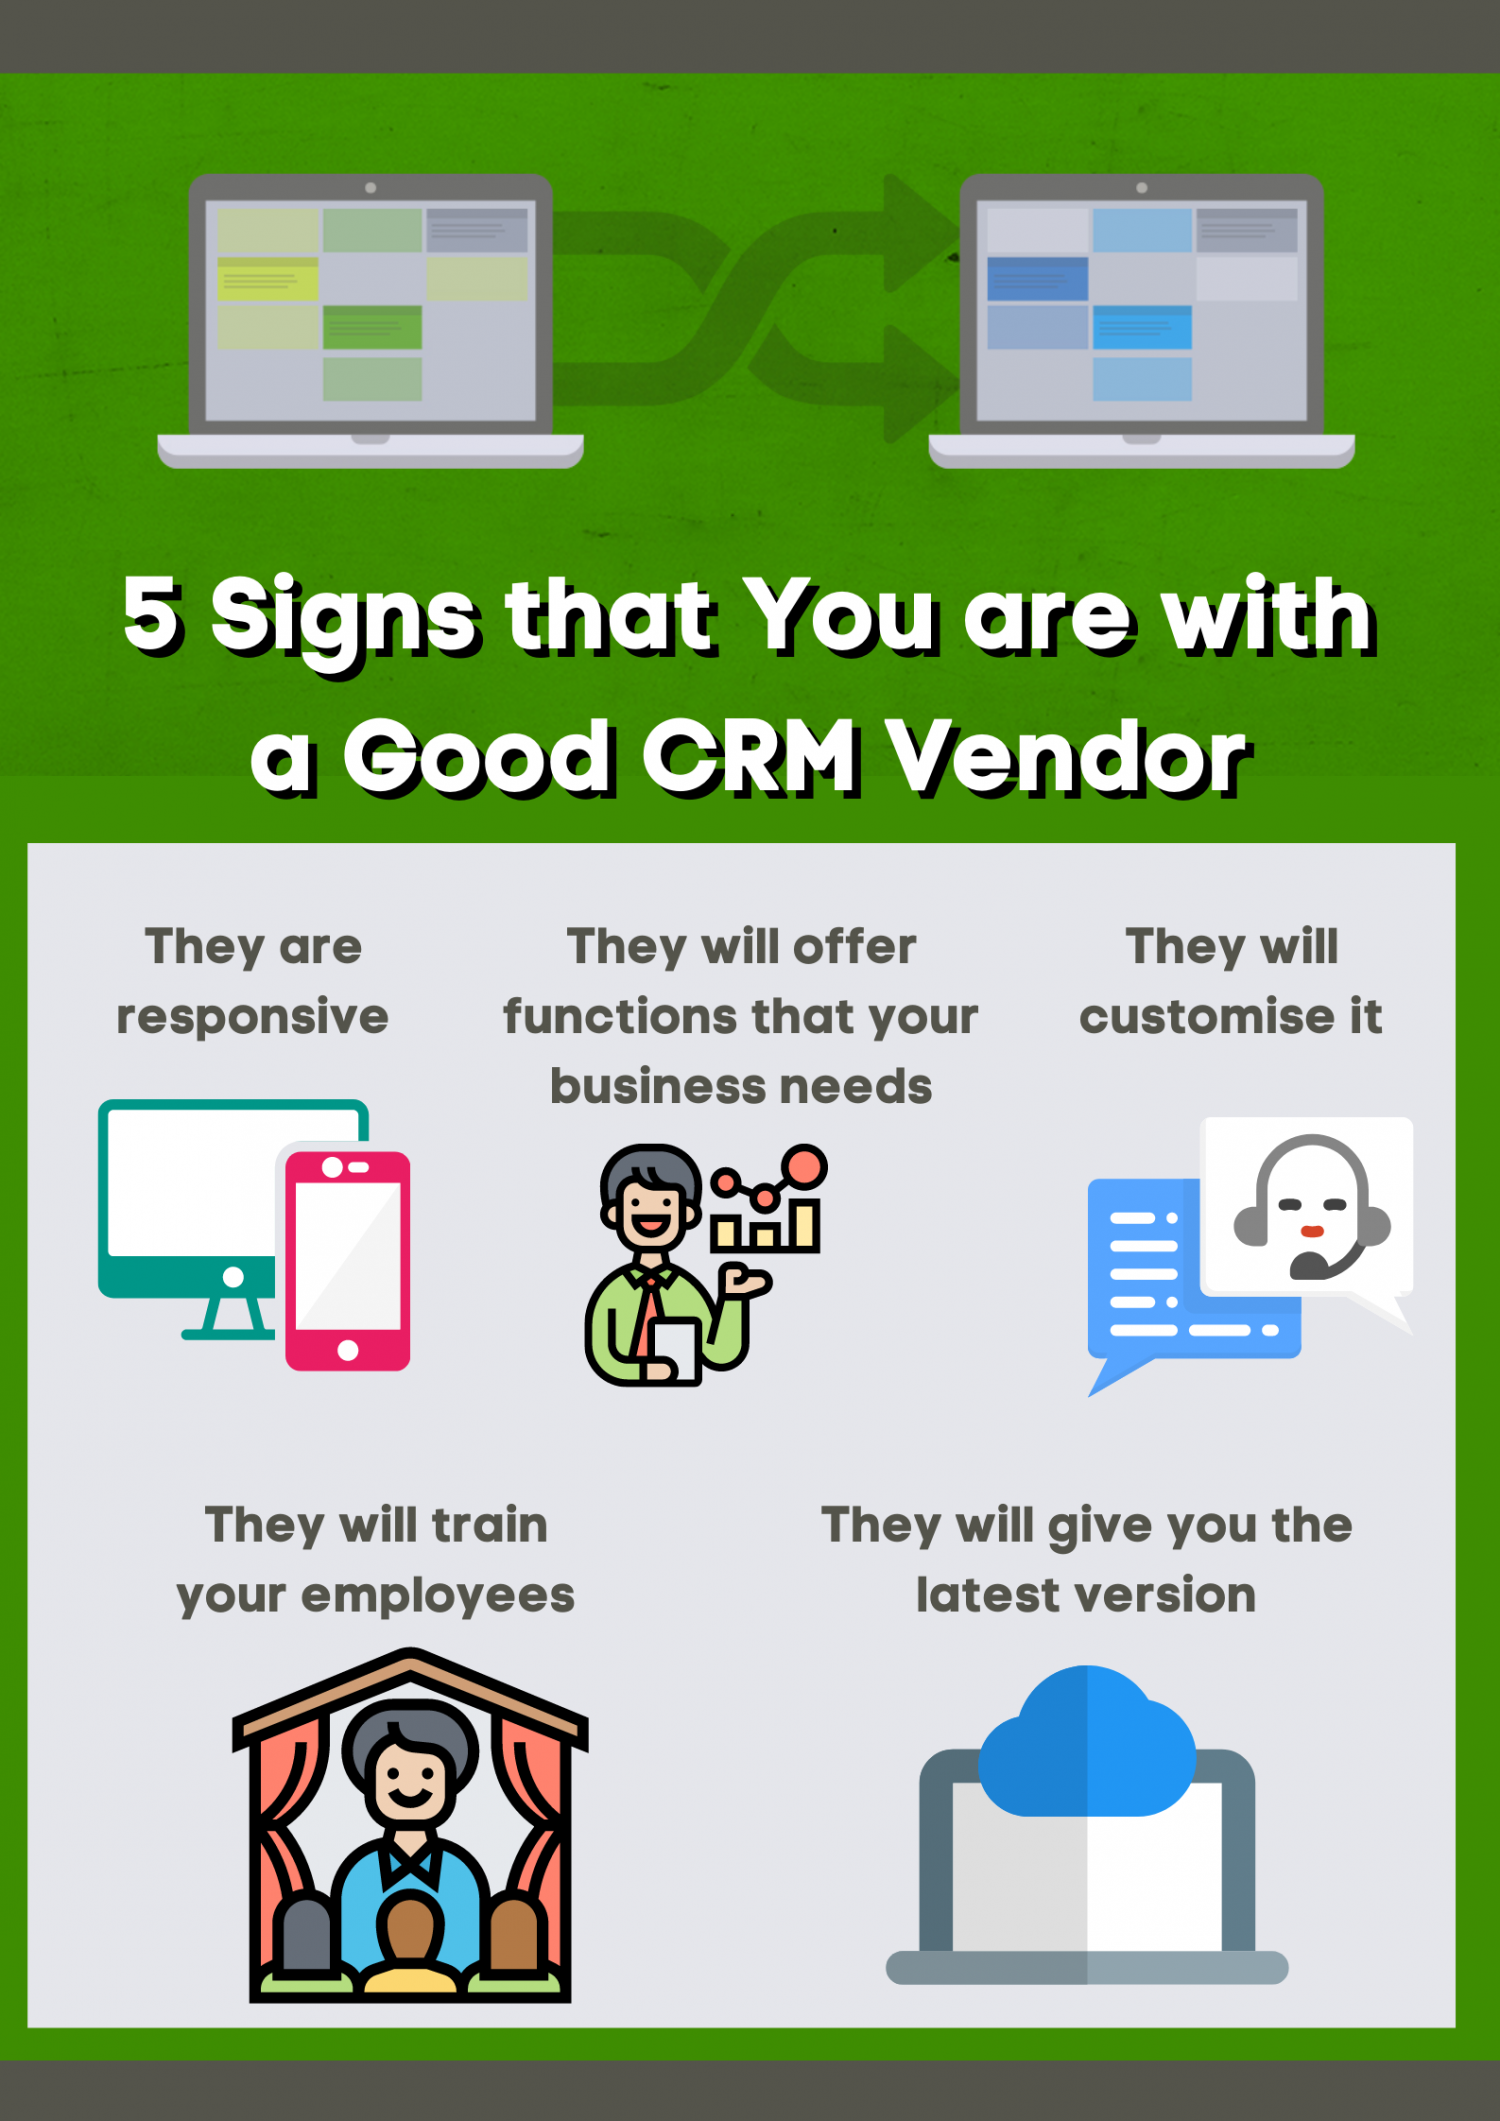 5 Signs that You are with a Good CRM Vendor Infographic